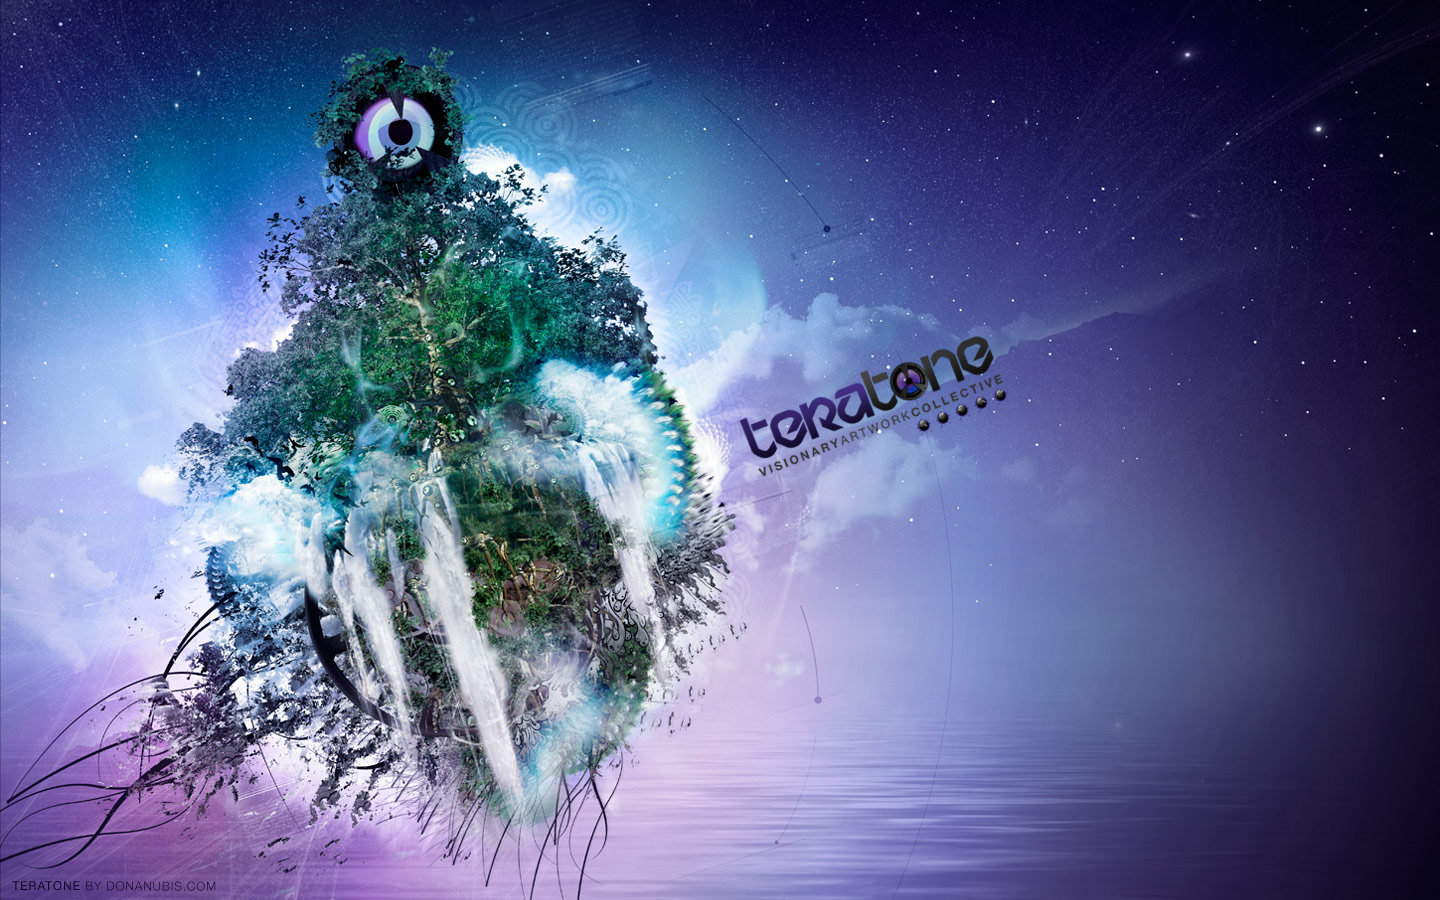 Teratone - Visionary Art Collective - Laurent Lemoigne - Donanubis - Don Anubis - Graphic Art - Graphic Design - Logo Design - Flyer - CSS Website Template - Geneva - Switzerland - Art - Music - Electronic - Party - Event - Floating Island - Waterfall - Tree - Speaker - Decay - Time - Elapsed - Fractal - Psychedelic - Hallucinogen - Avatar - Alternative - Underground - Psytrance - Dark Psytrance - Darkpsy - Trance - Goa - DJ - VJ